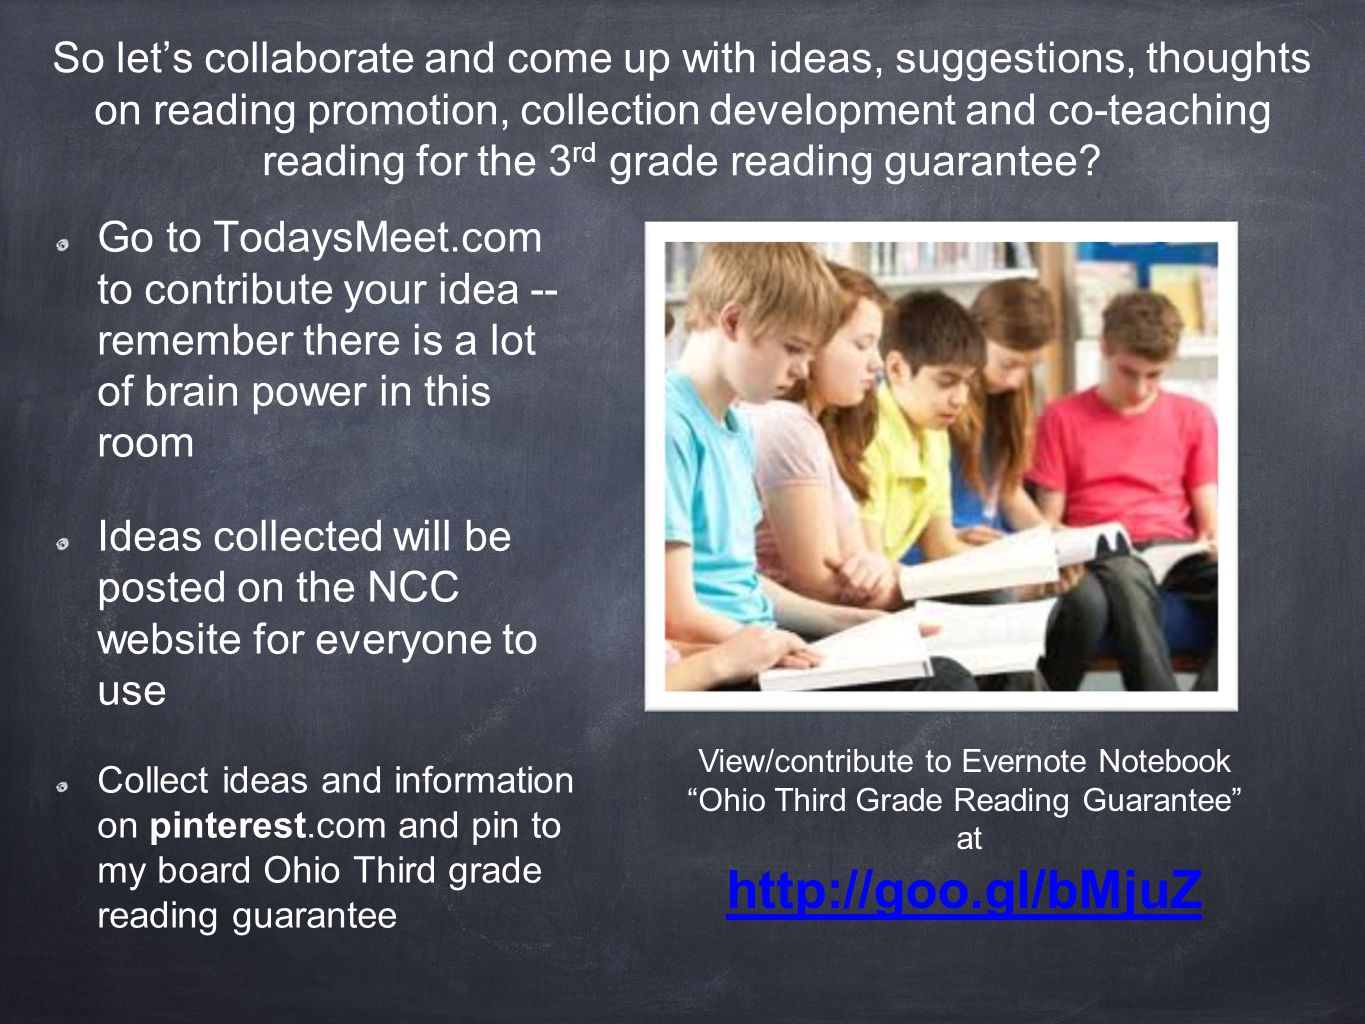 So let's collaborate and come up with ideas, suggestions, thoughts on reading promotion, collection development and co-teaching reading for the 3 rd grade reading guarantee.